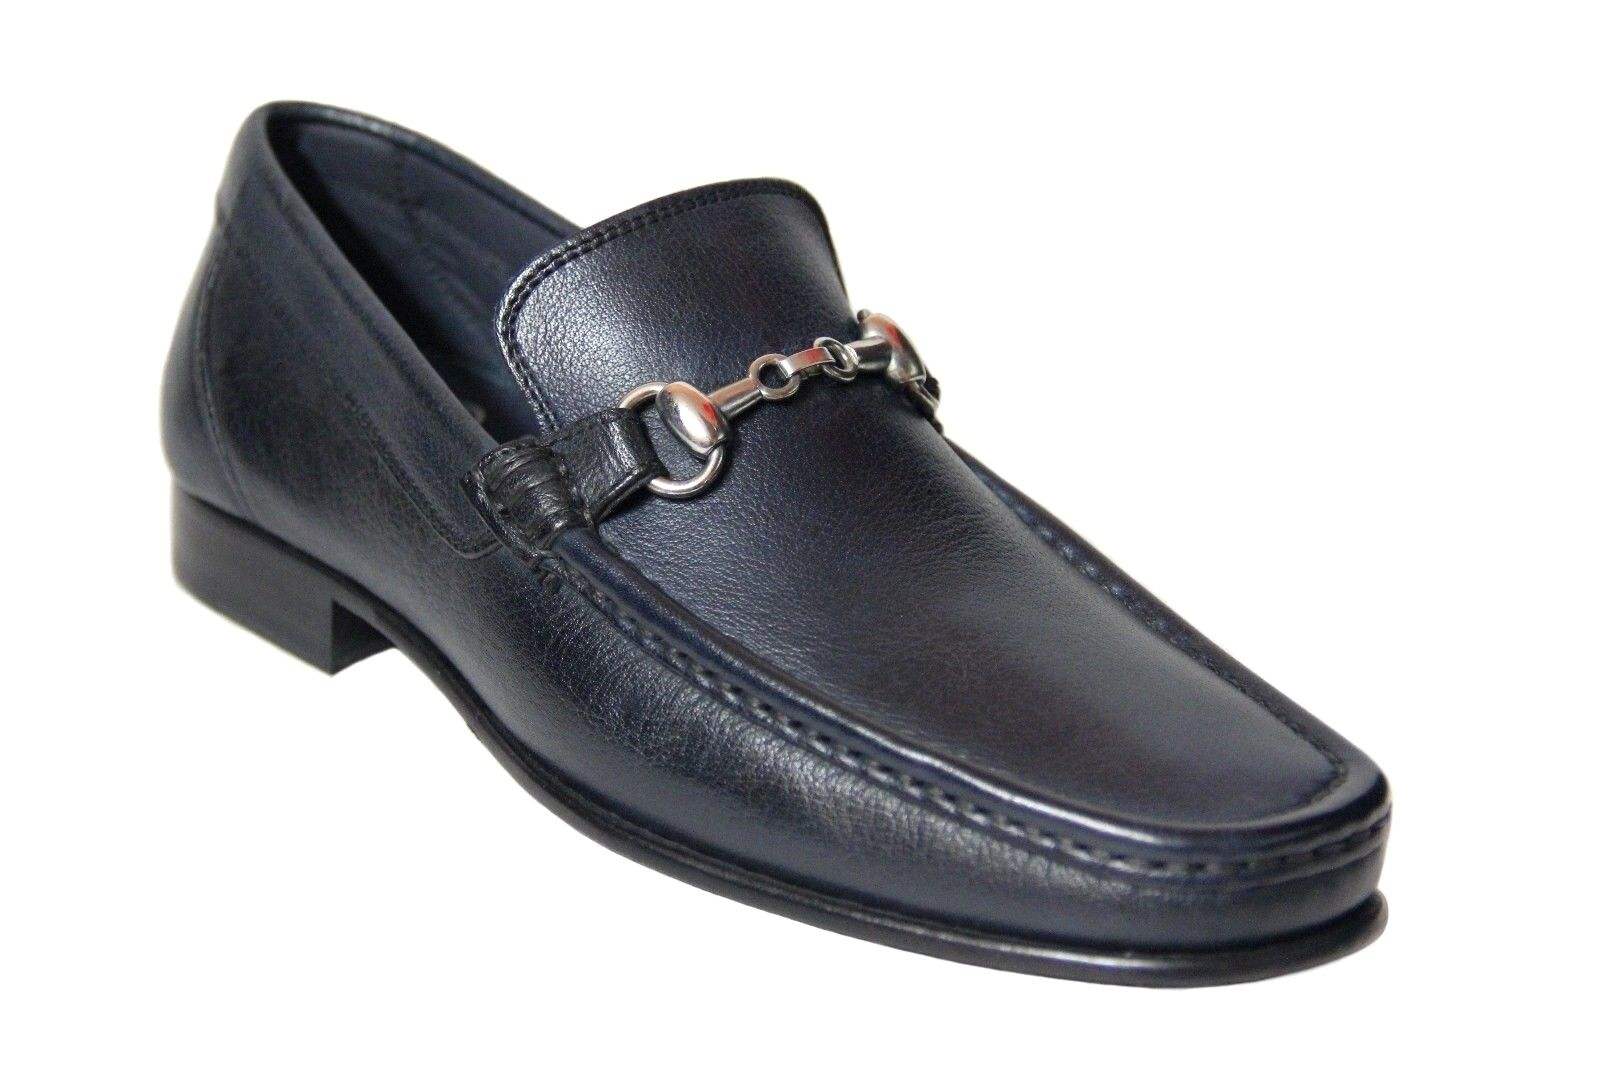 Calzoleria Toscana Men's Slip On Navy bluee Leather Hand Craft Loafer shoes 8616